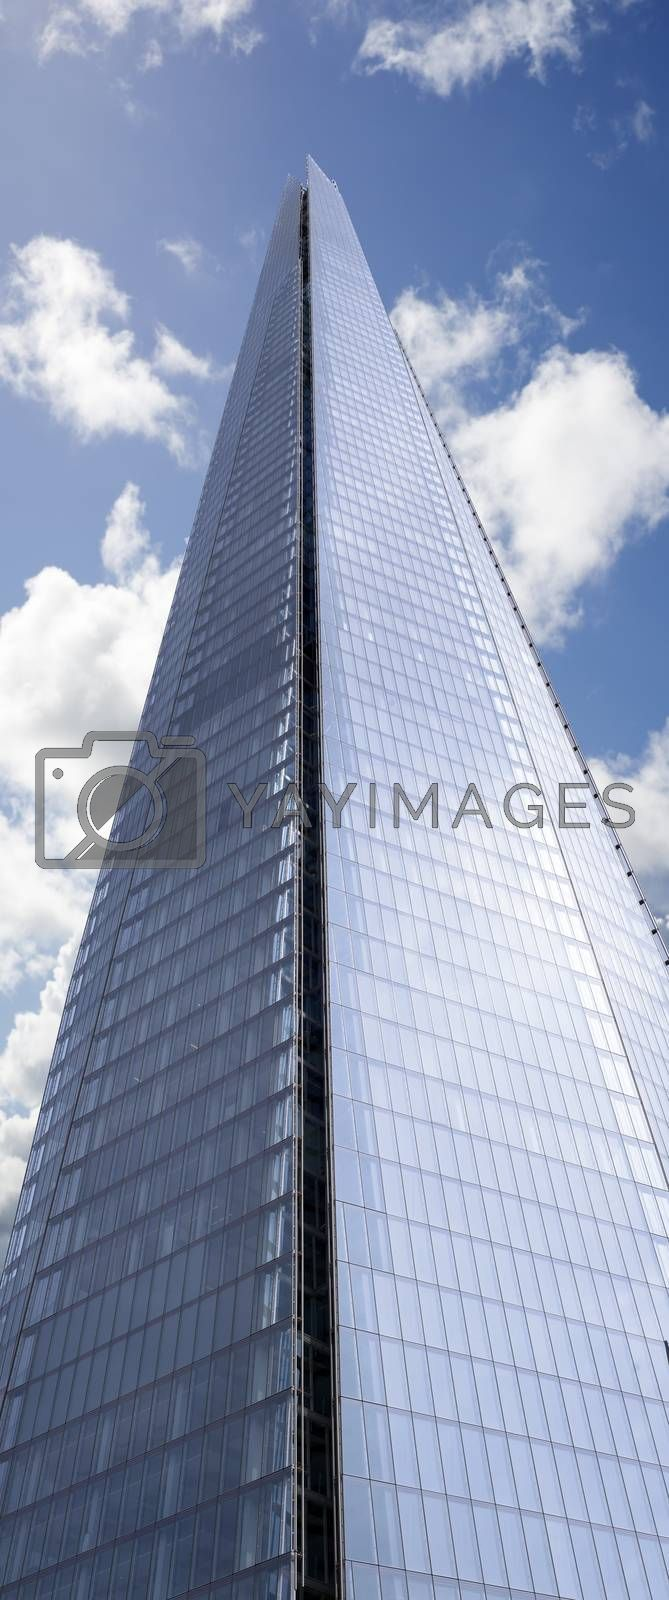 shard skyscraper looming high into the beautiful blue cloudy sky